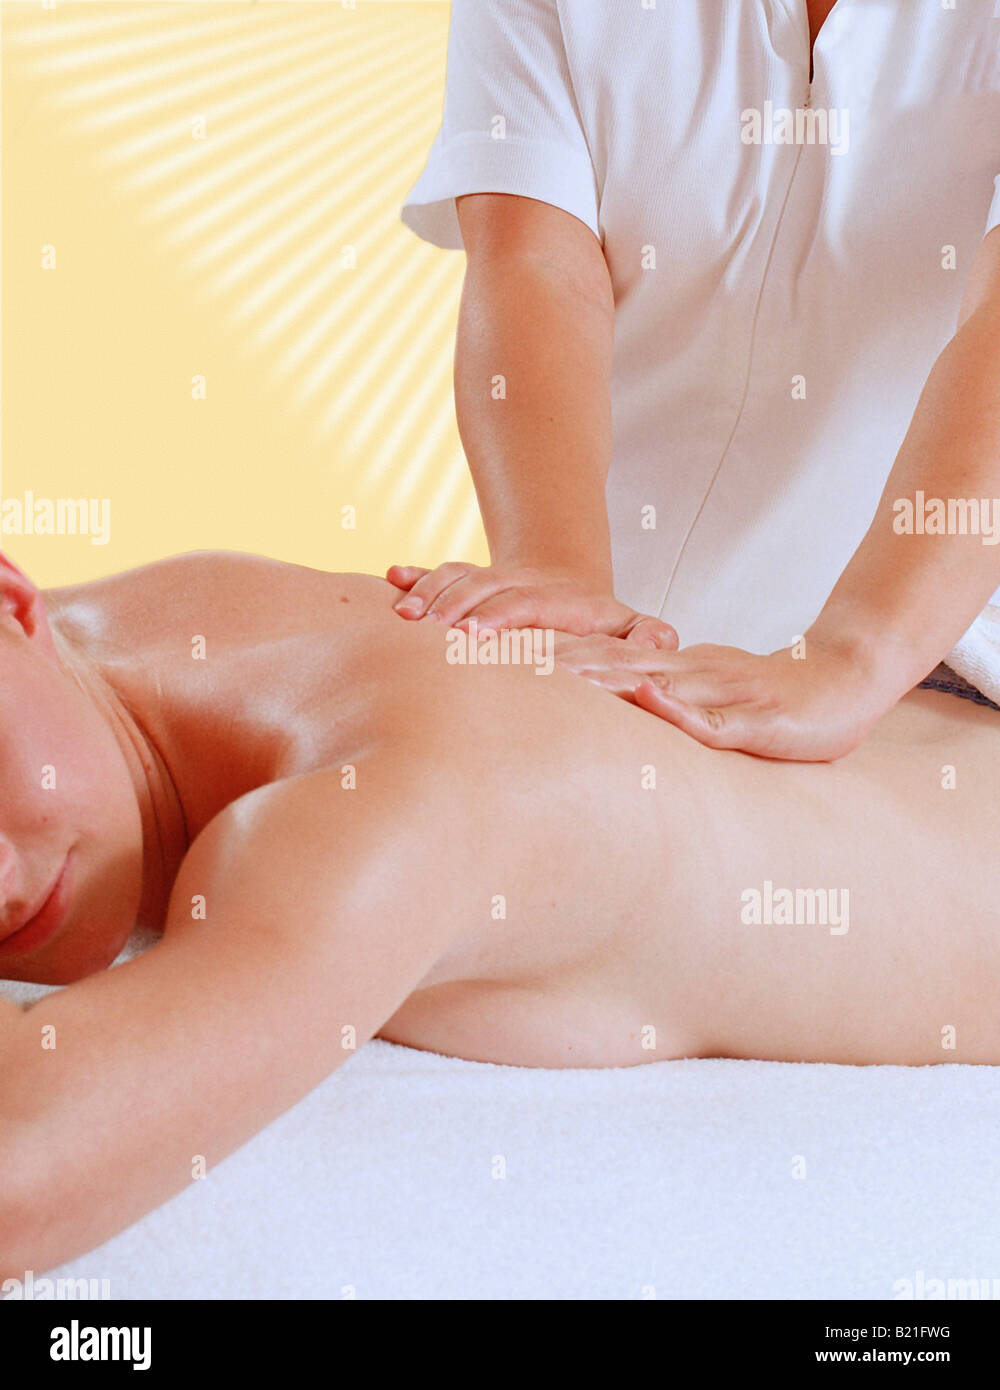 MASSEUSE AND CLIENT AT A HEALTH SPAR - Stock Image